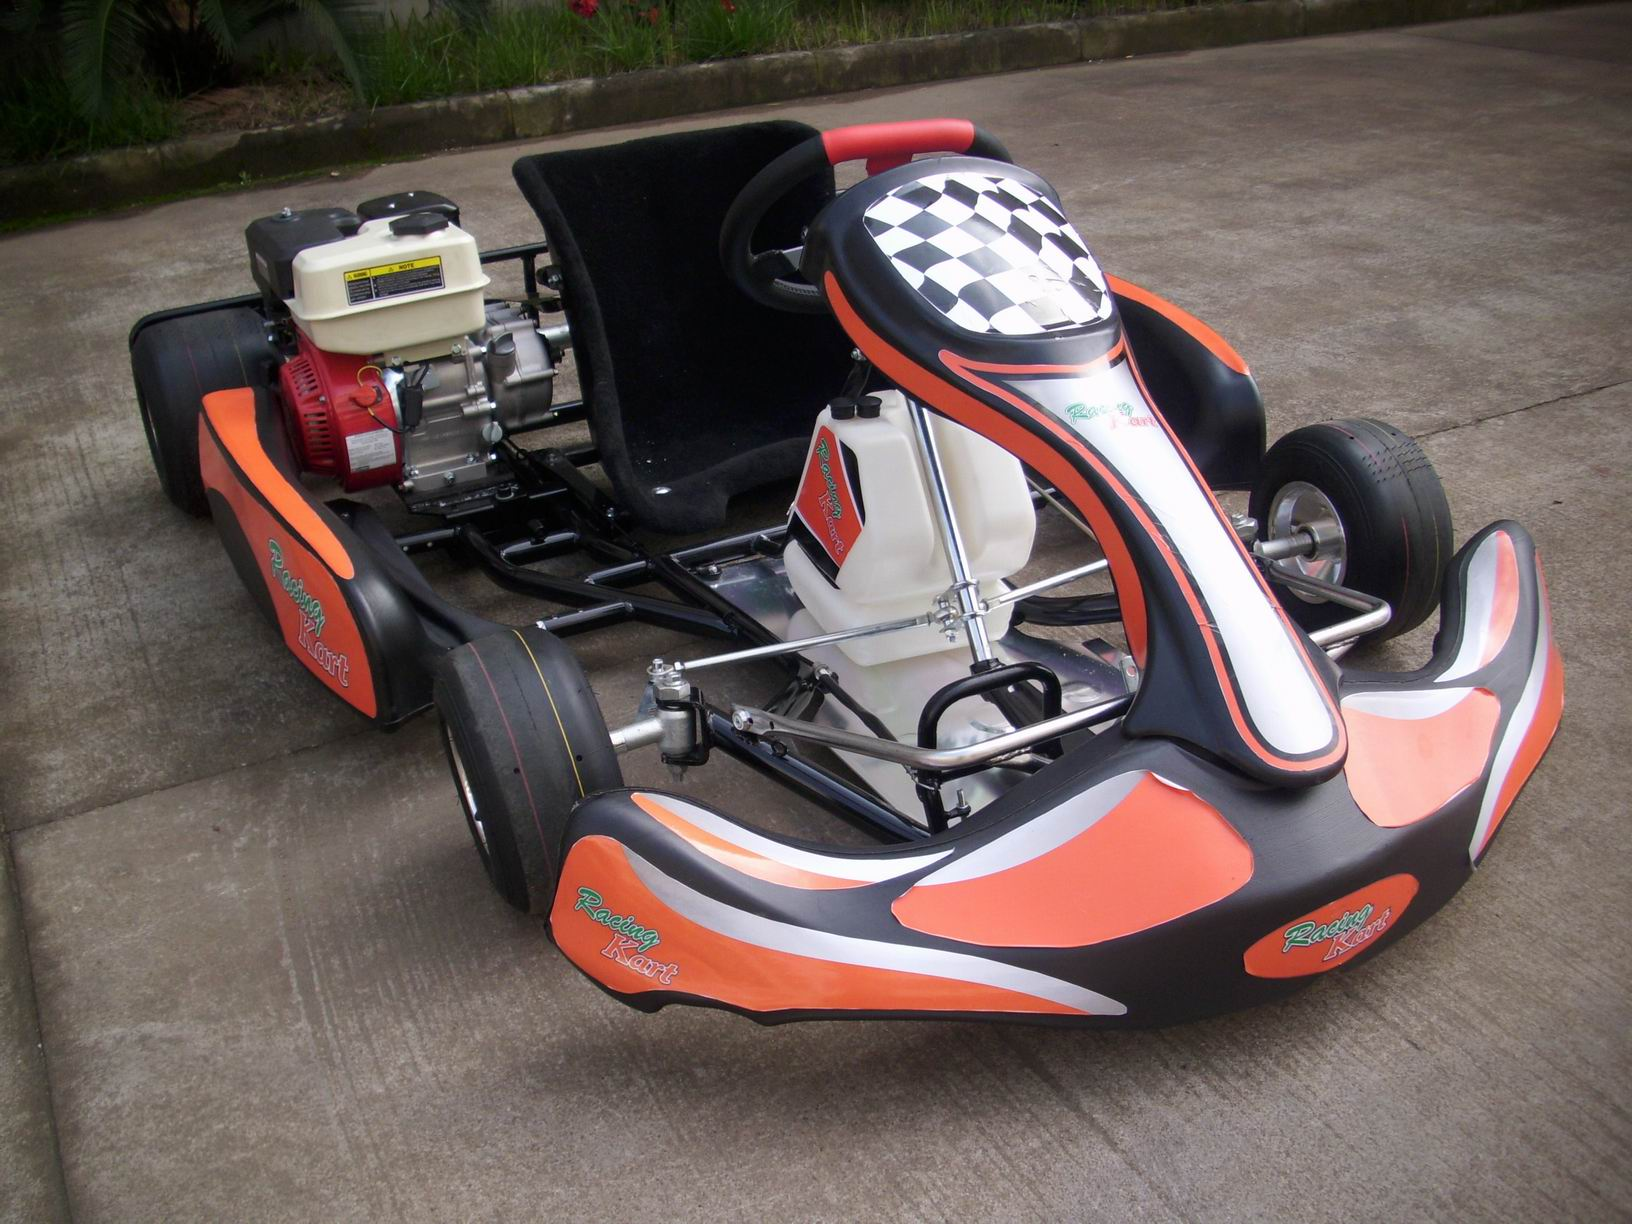 Fast and furious go karts! How to buy one cheap!